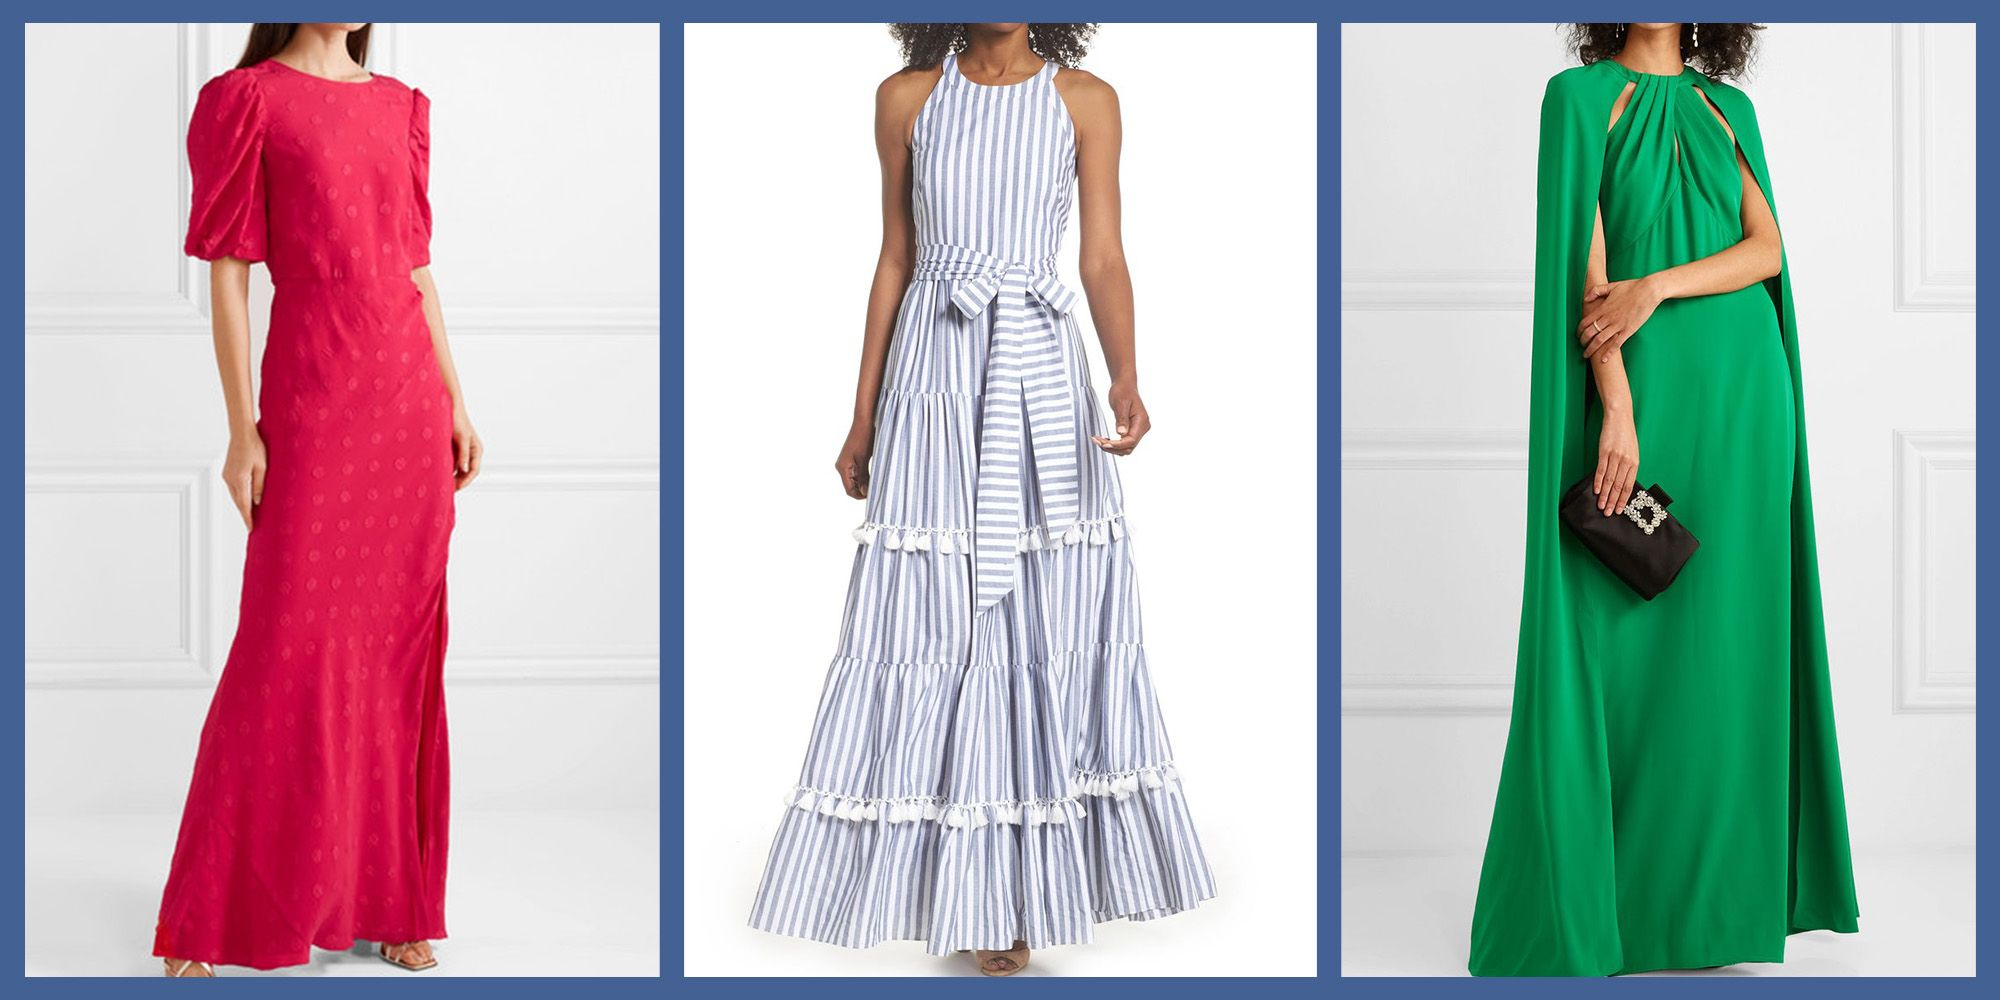 72c7d88099e What to Wear to a Summer 2019 Wedding - 15 Stylish Summer Wedding Guest  Dresses